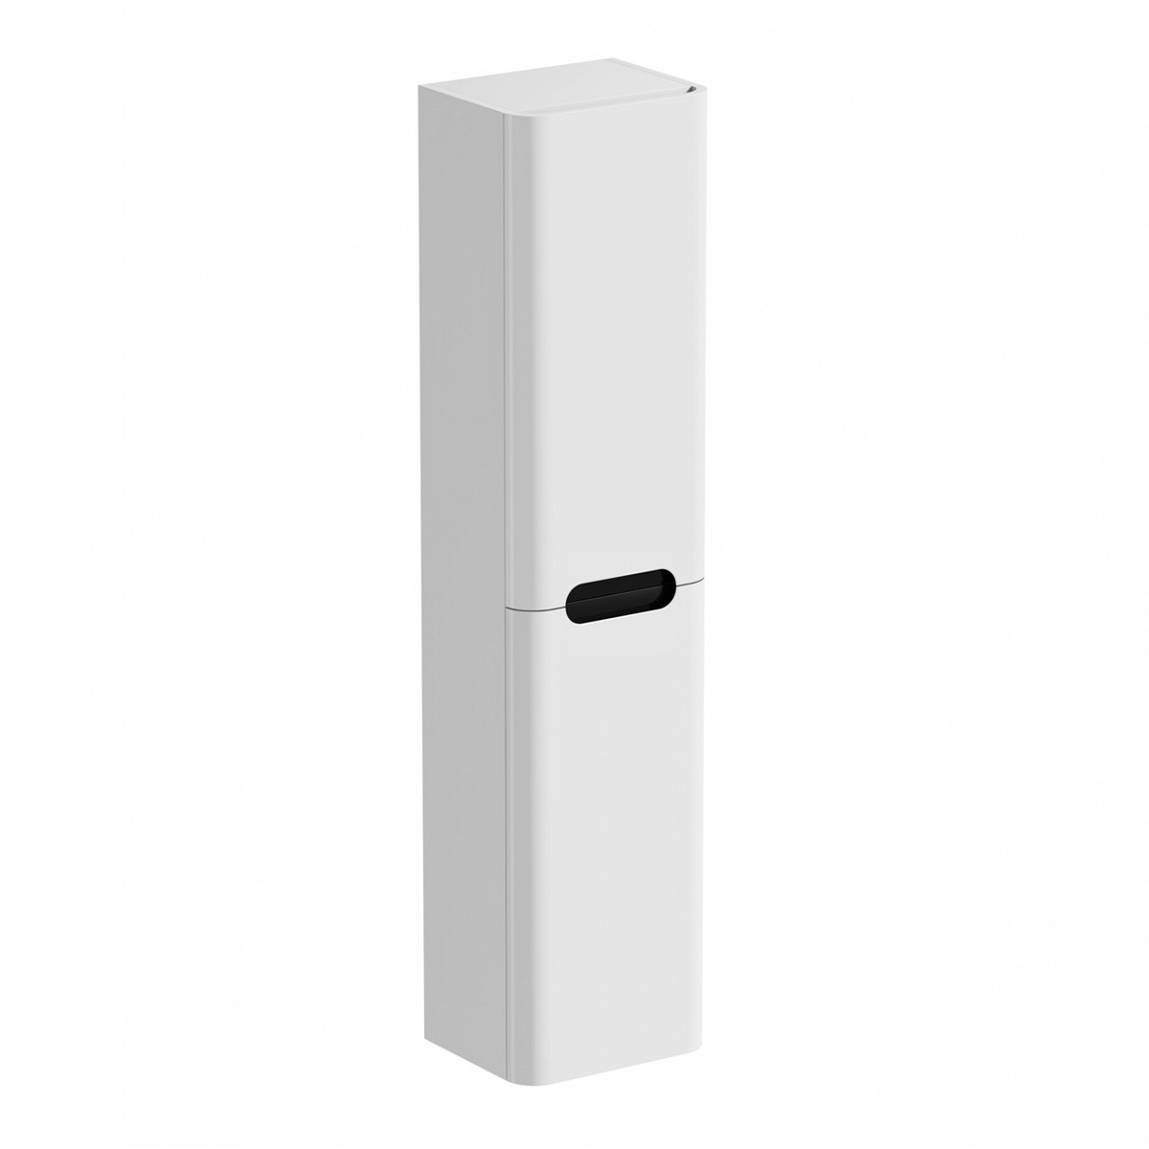 Image of Planet Select White Wall Cabinet with Essen Insert